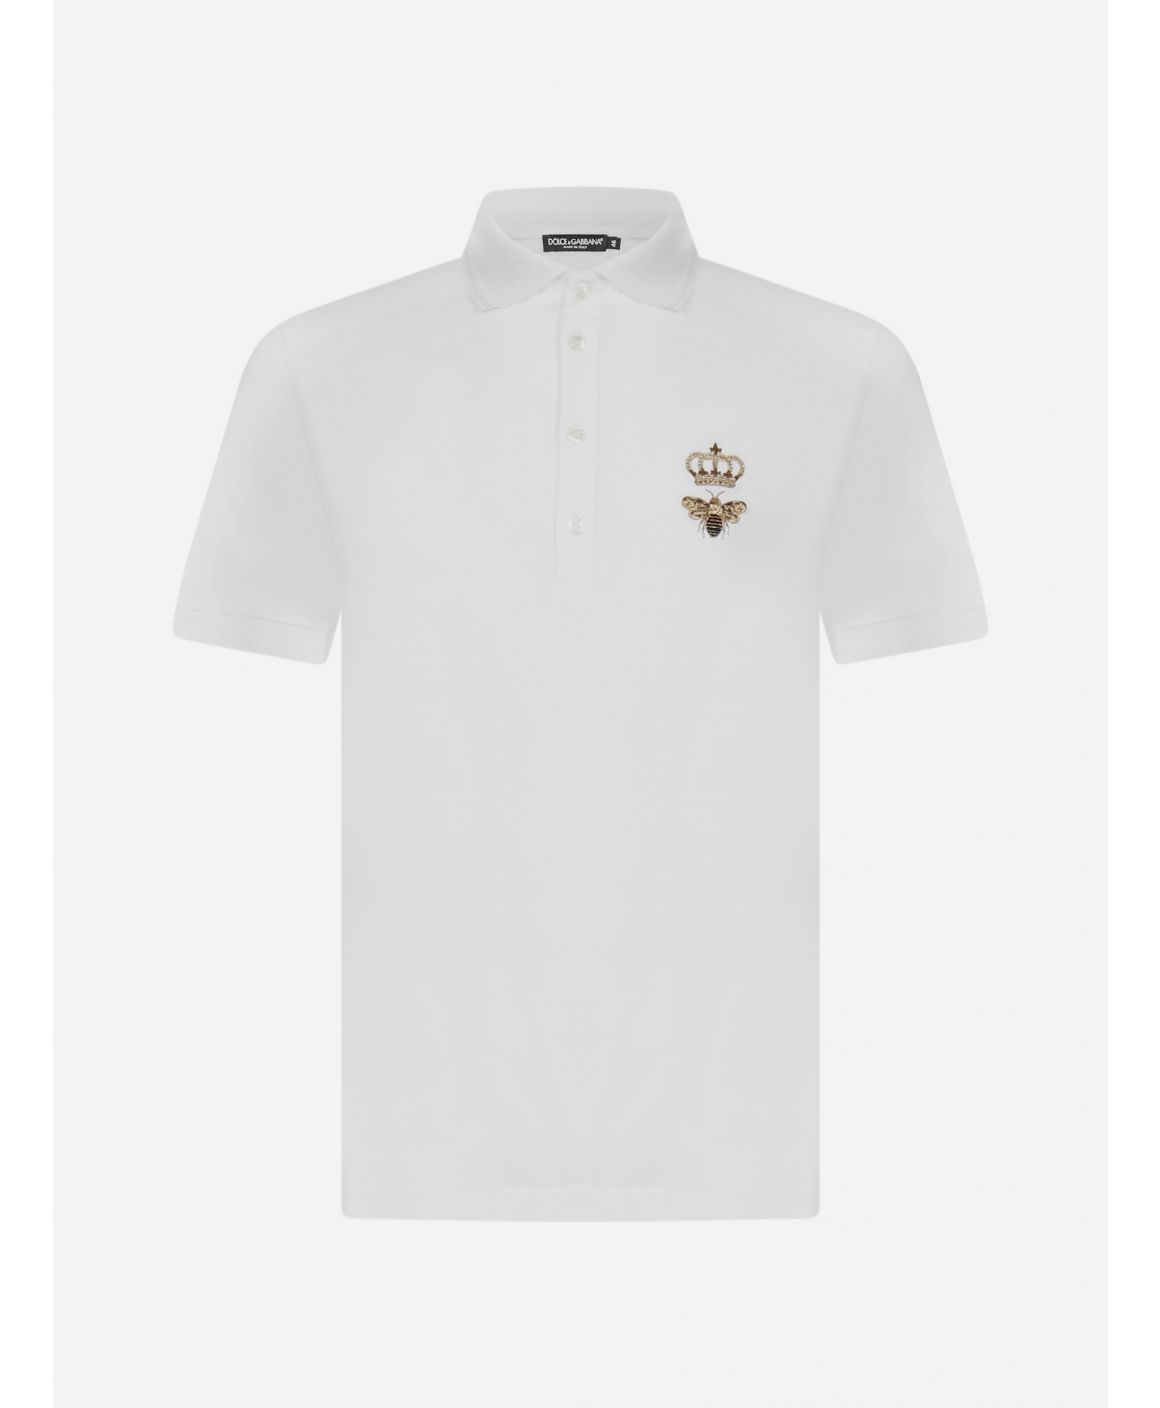 Bee and Crown embroidery cotton polo shirt